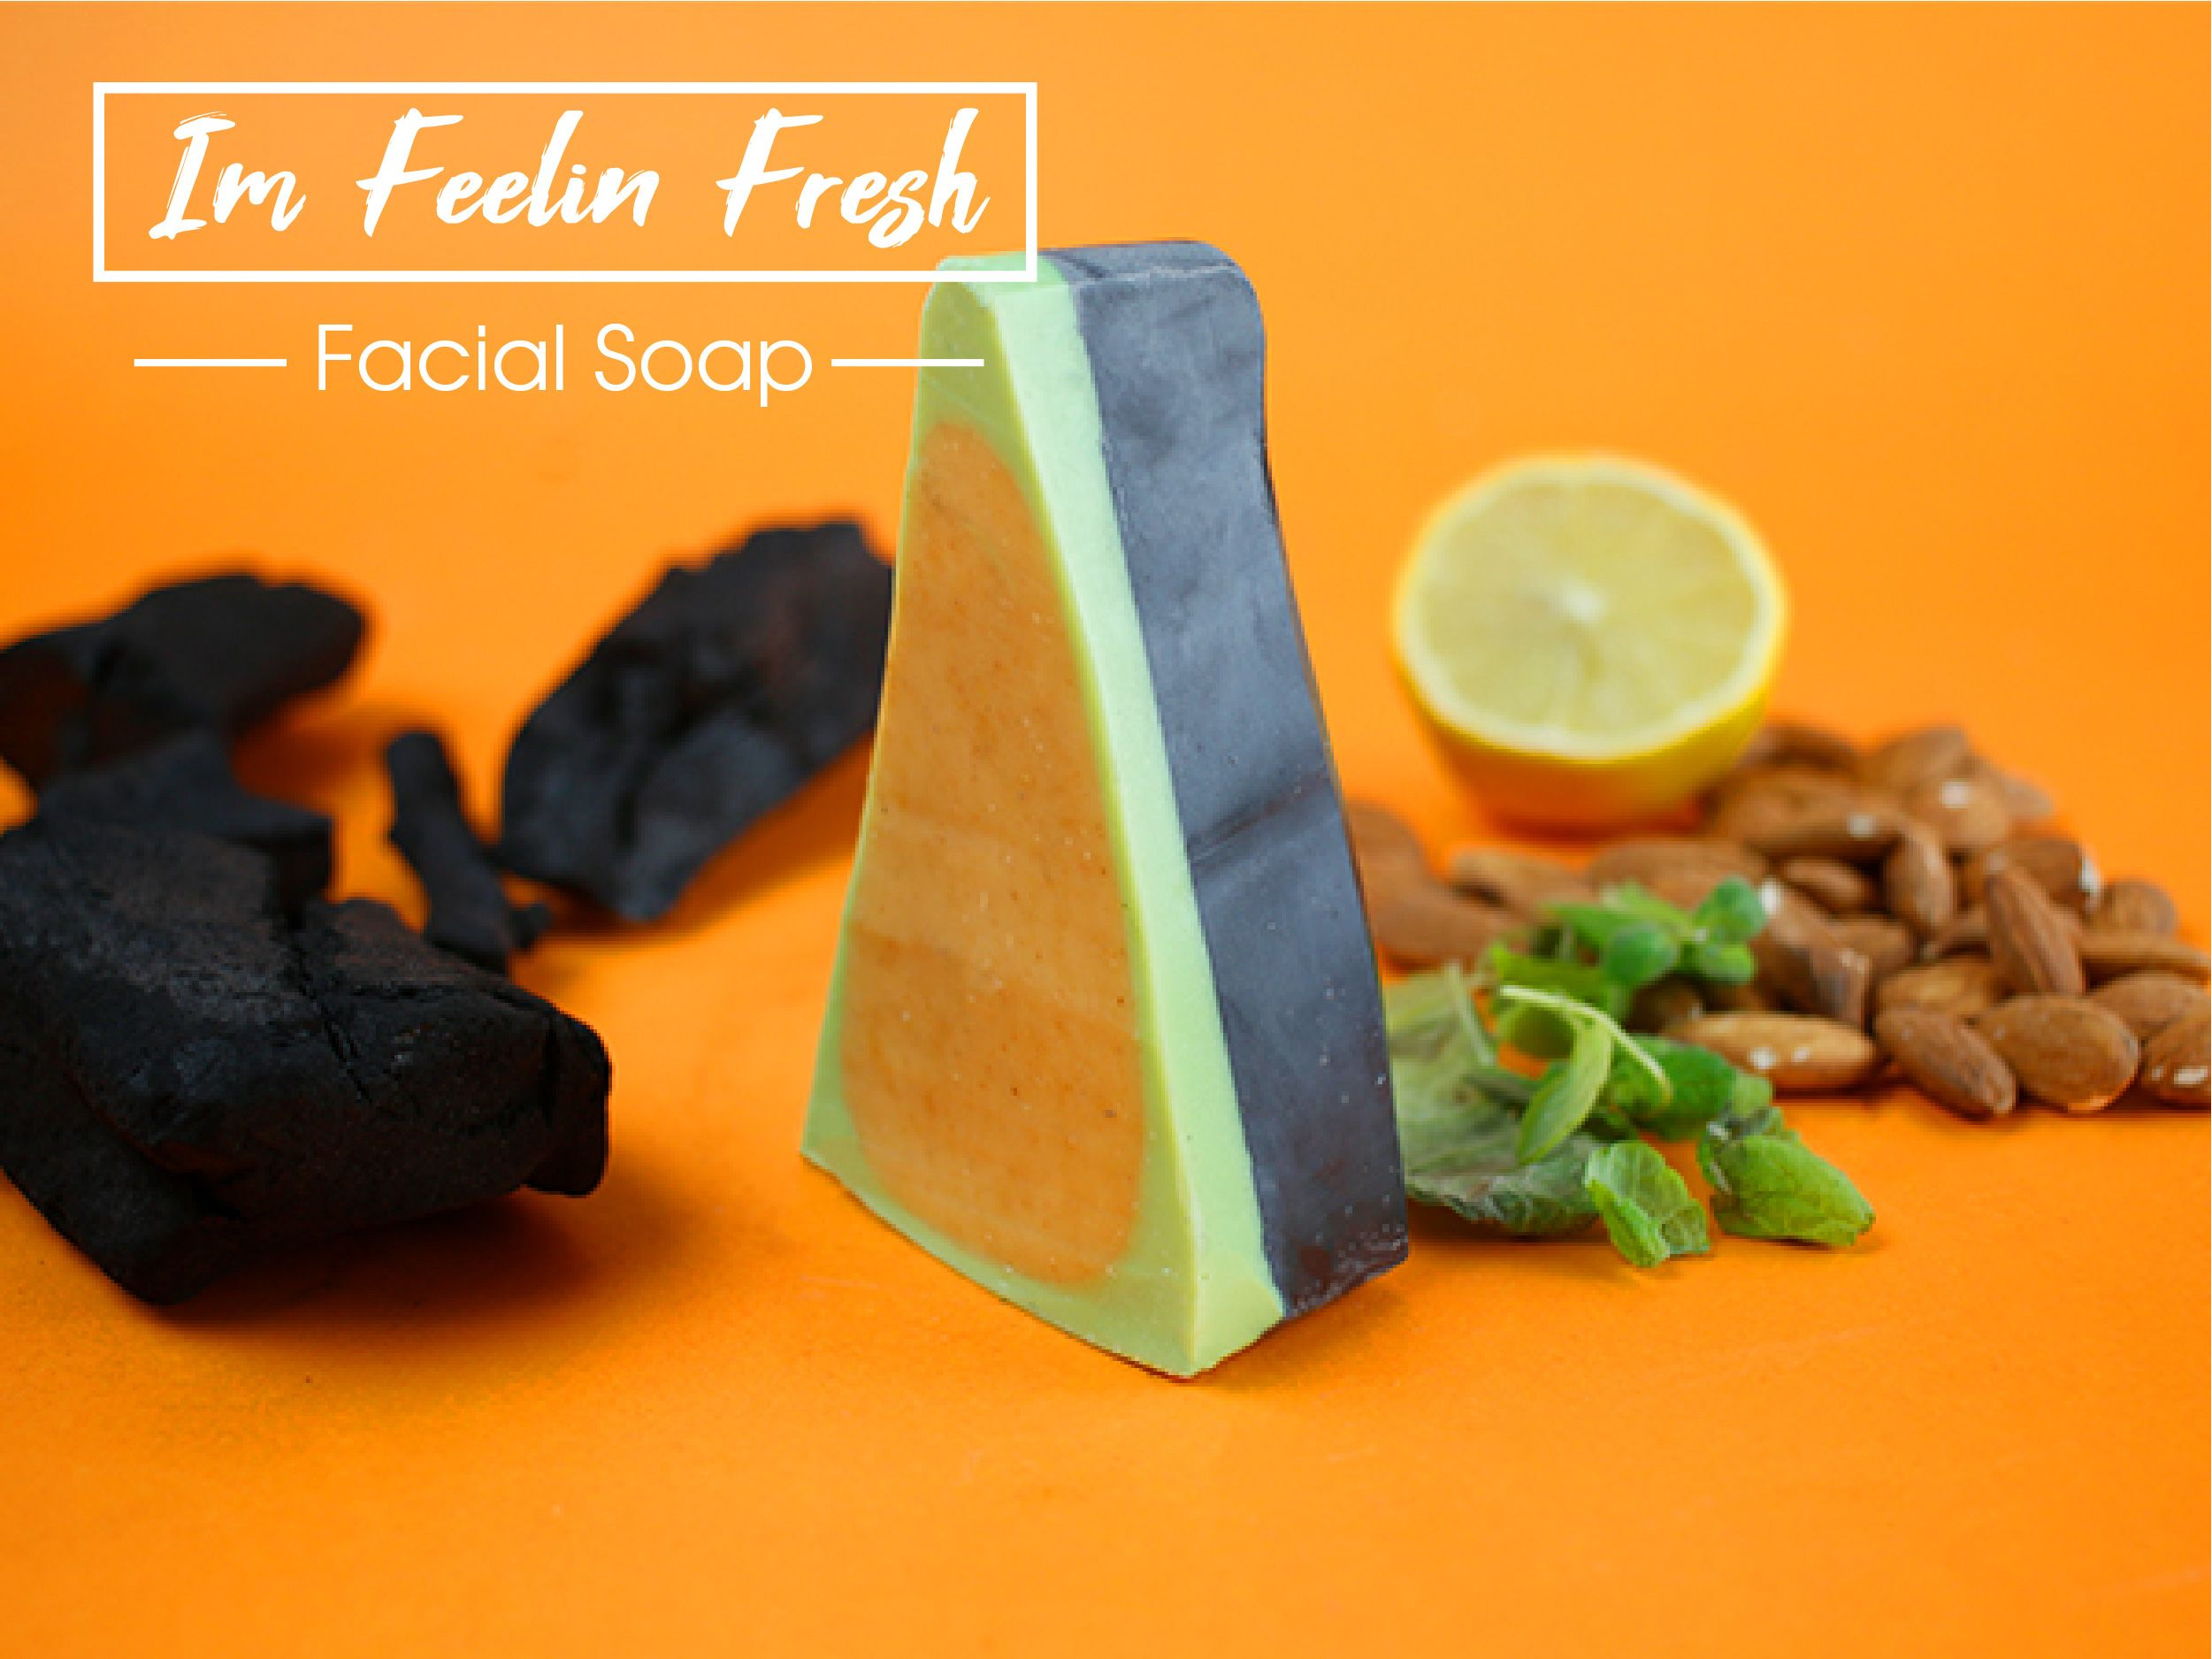 I'm feelin fresh facial soap